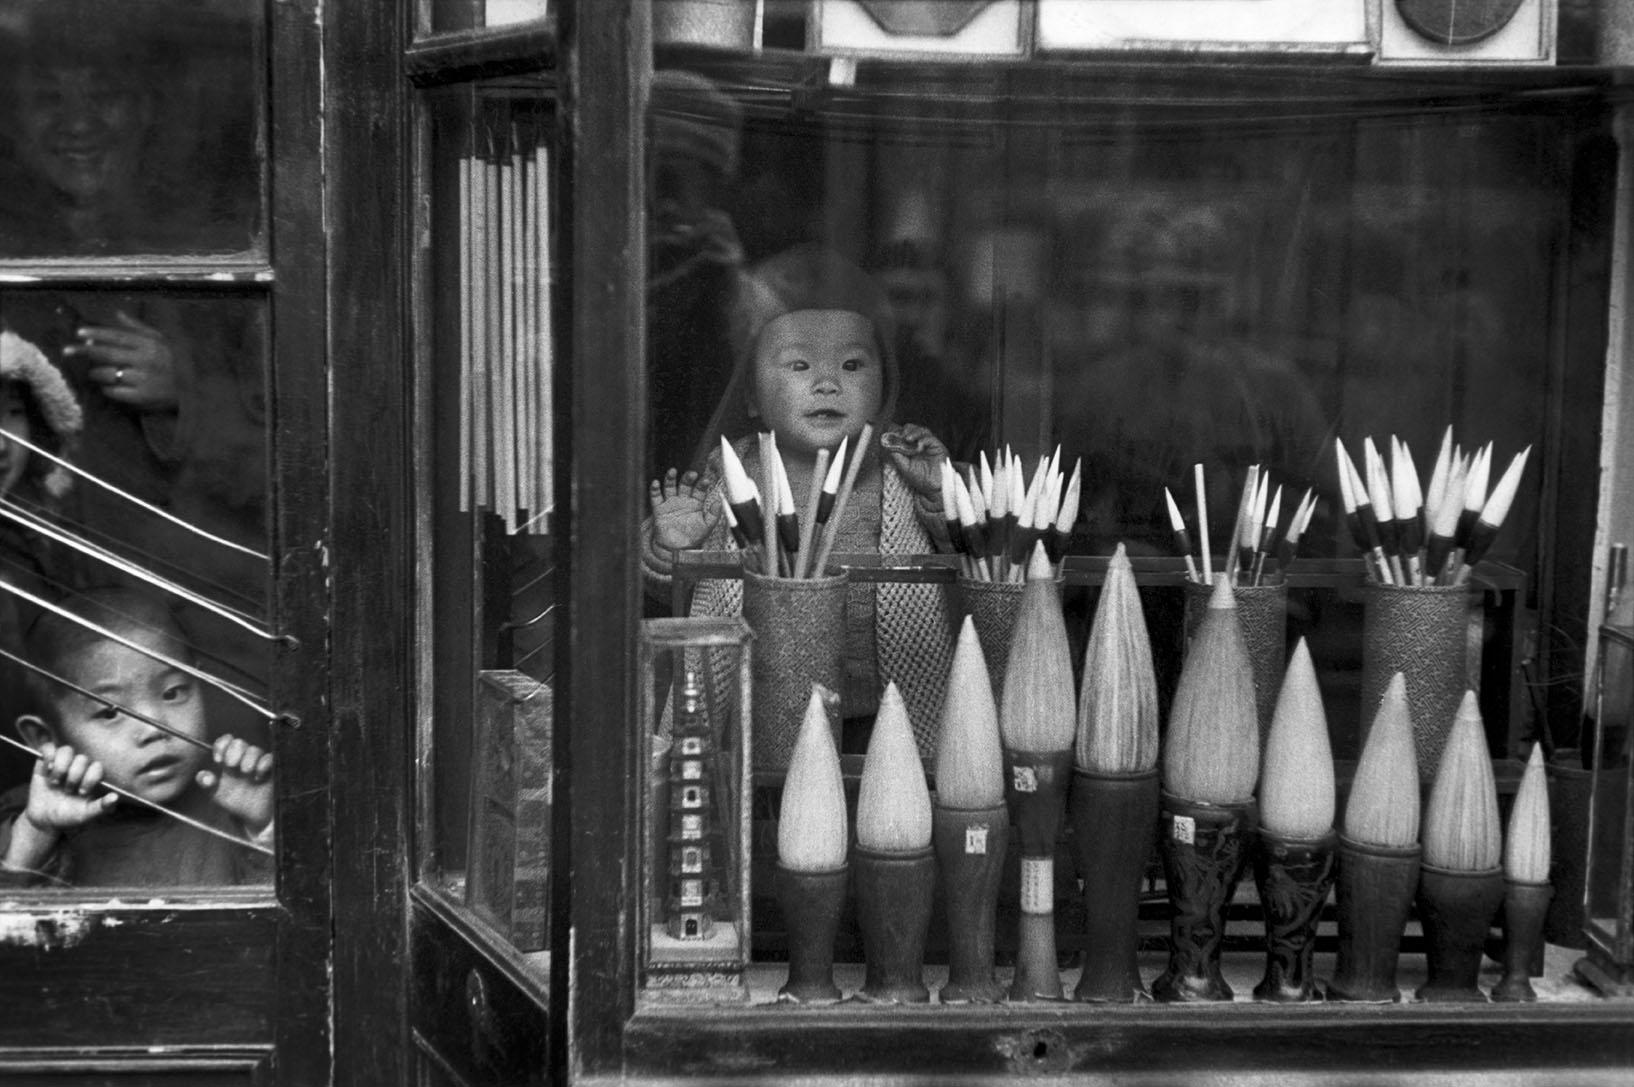 The window display of a brush merchant in the antique dealers' street, Beijing, December 1948.